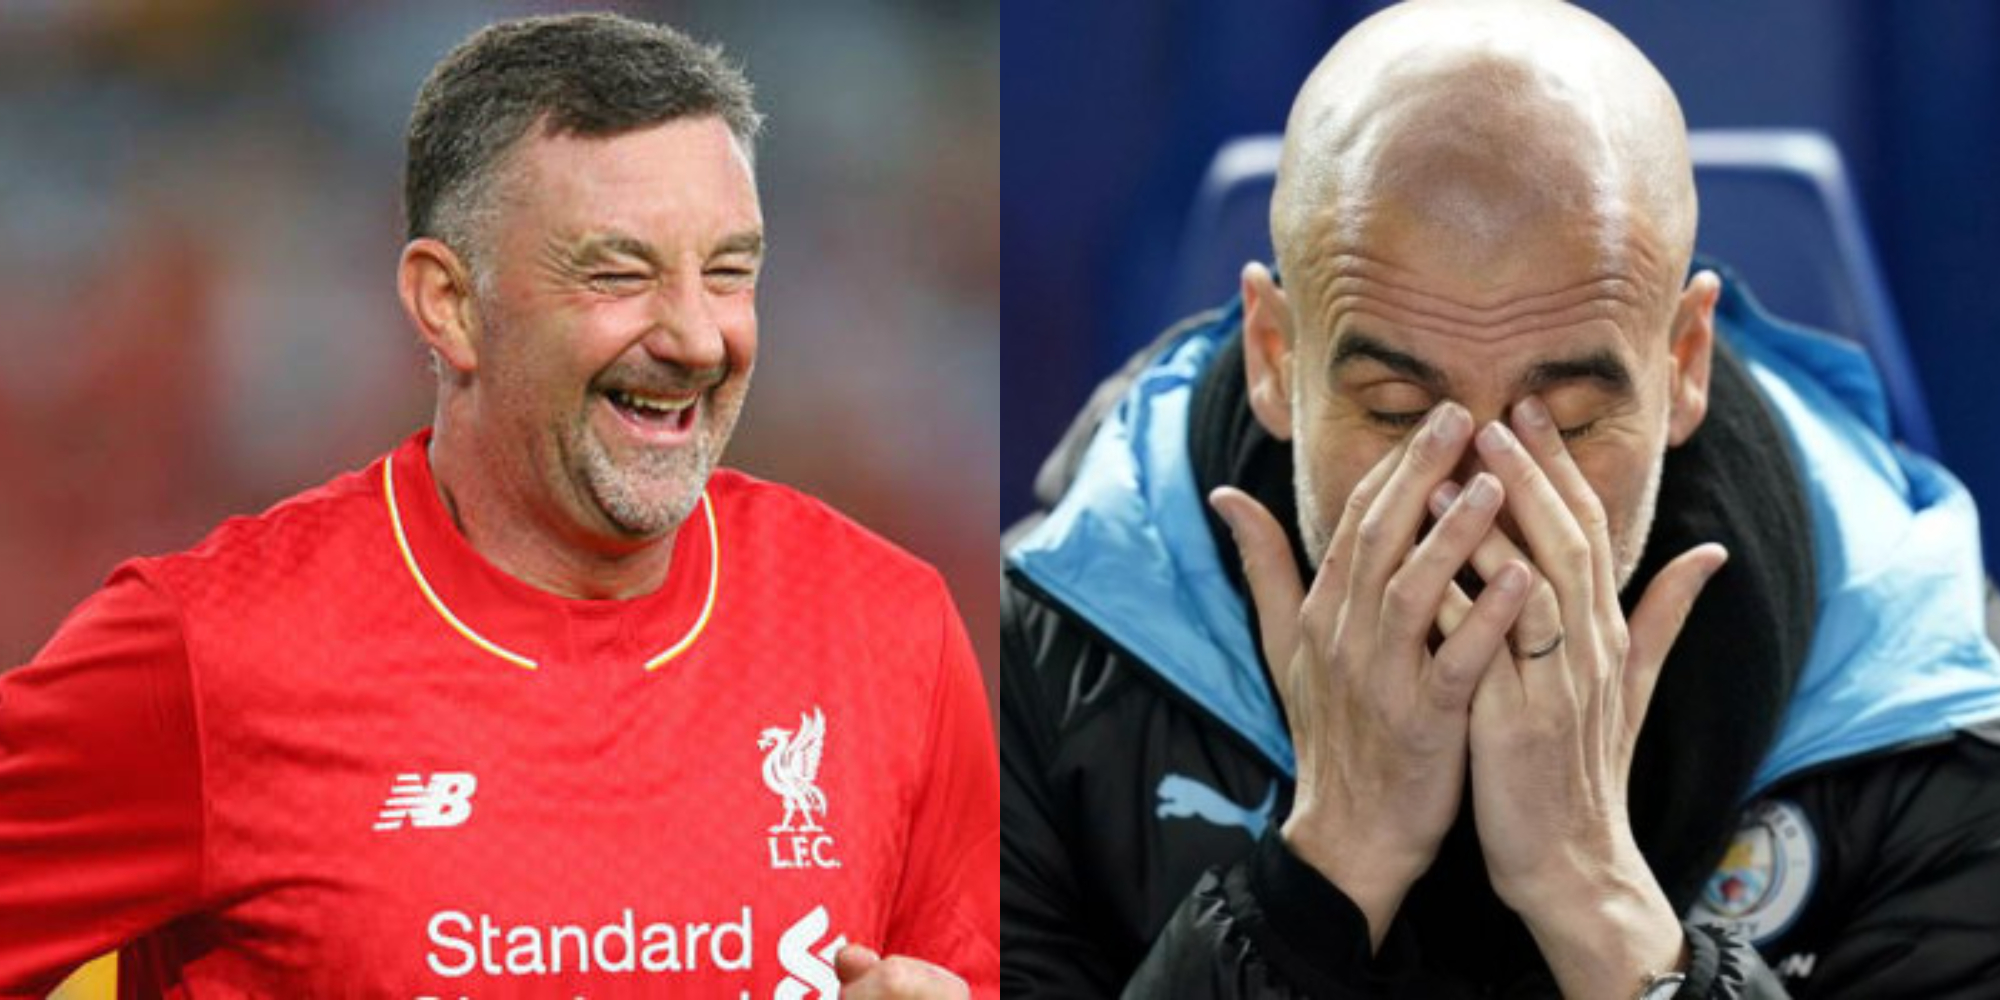 Liverpool legend rips into Manchester City after Champions League defeat